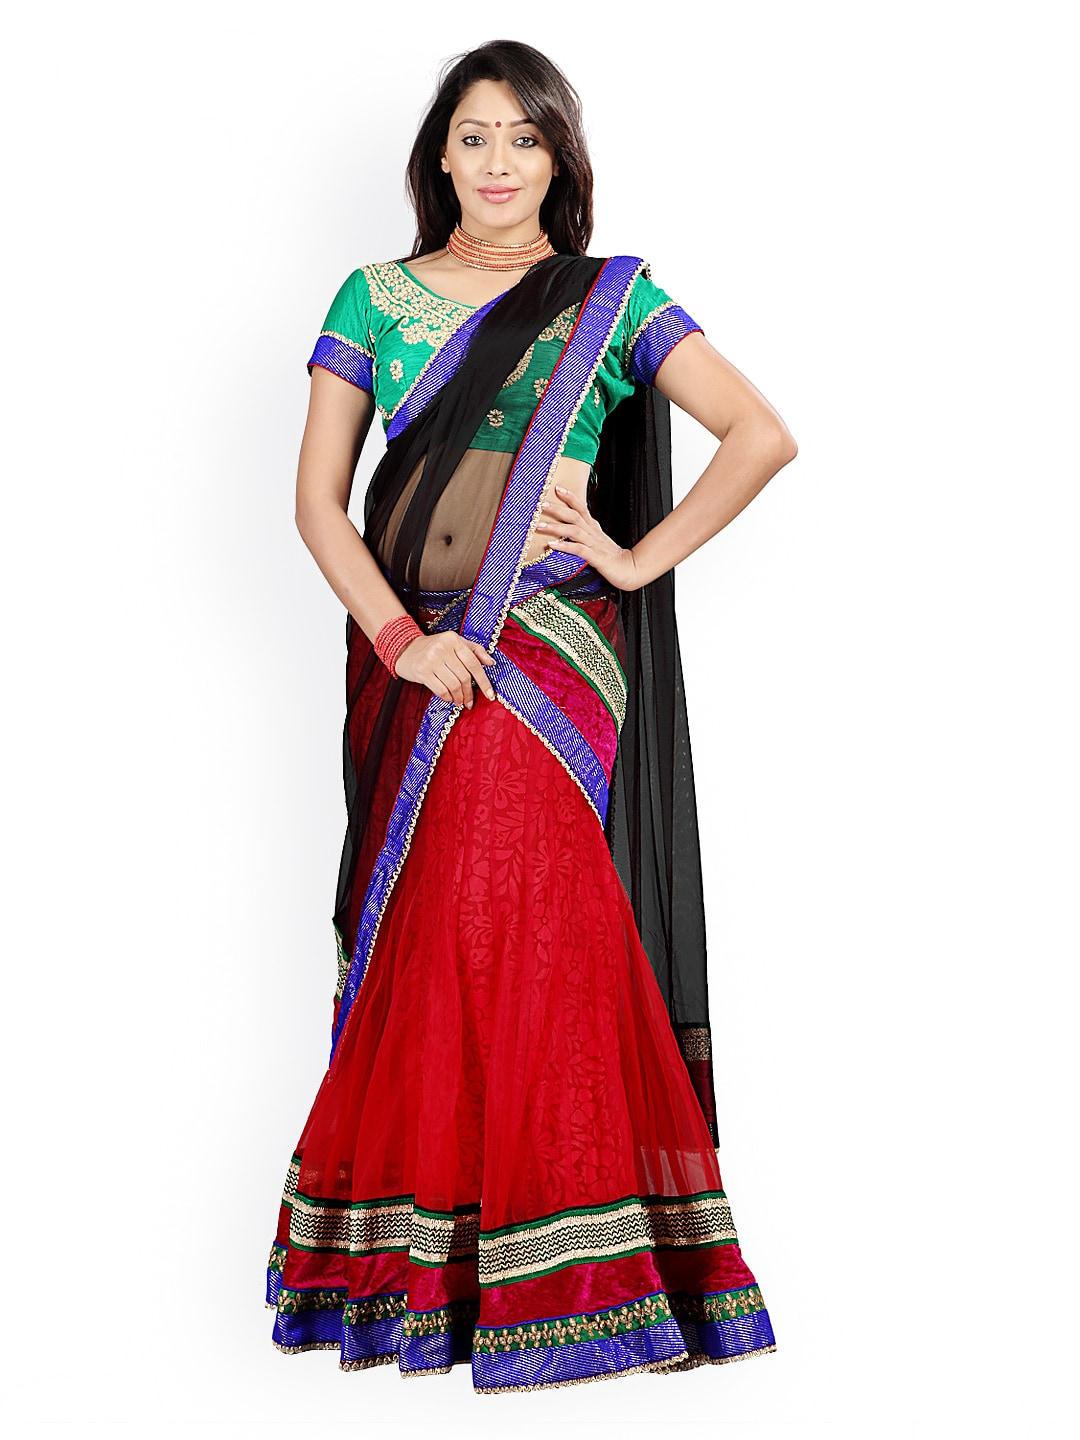 Florence Red & Green Semi-Stitched Brasso Net Lehenga Choli with Dupatta